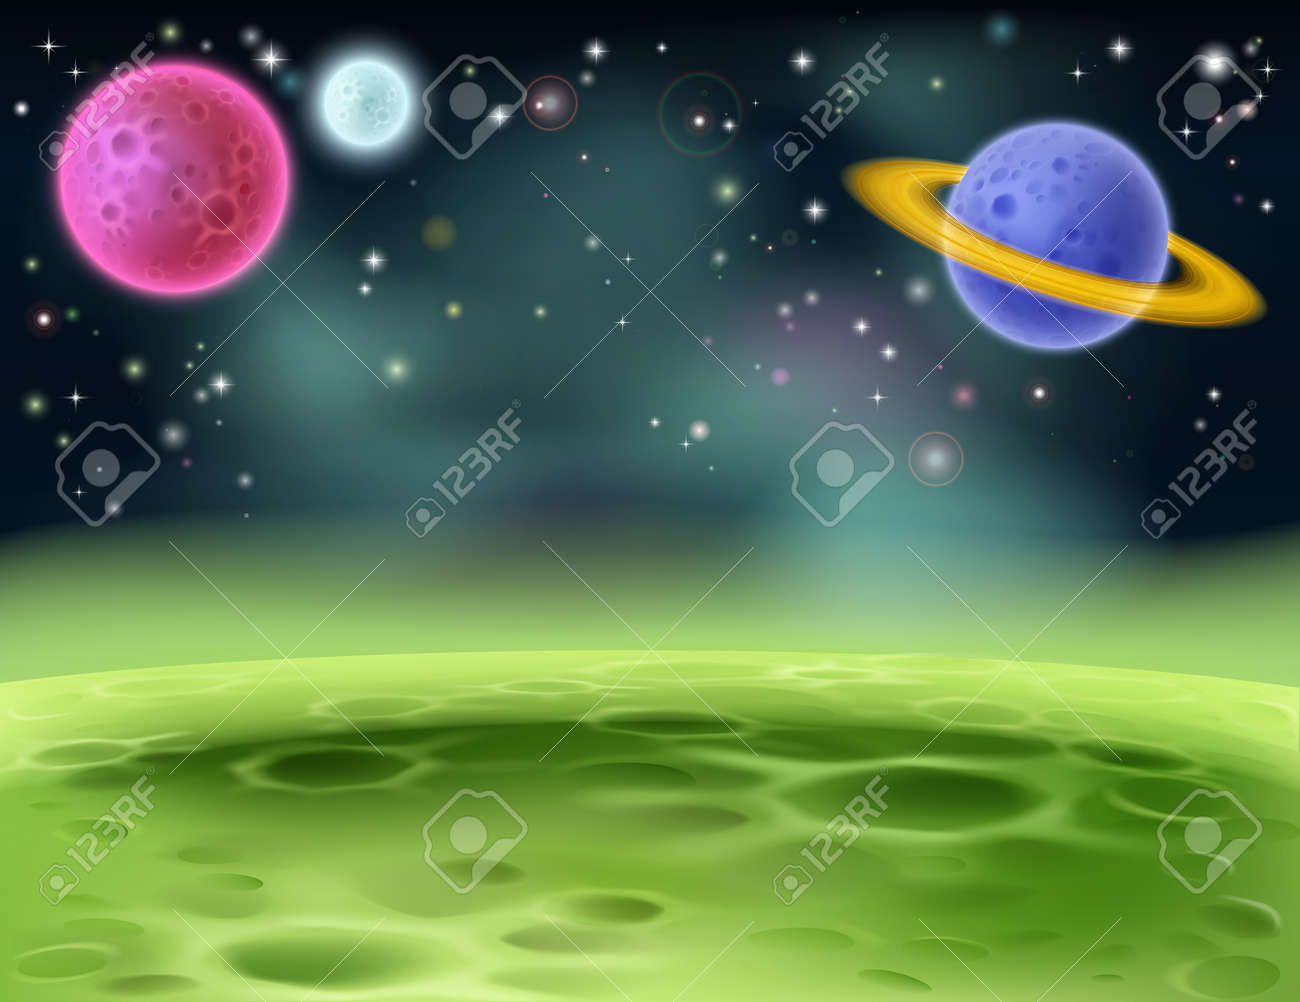 An illustration of an outer space cartoon background with colorful planets - 21887221